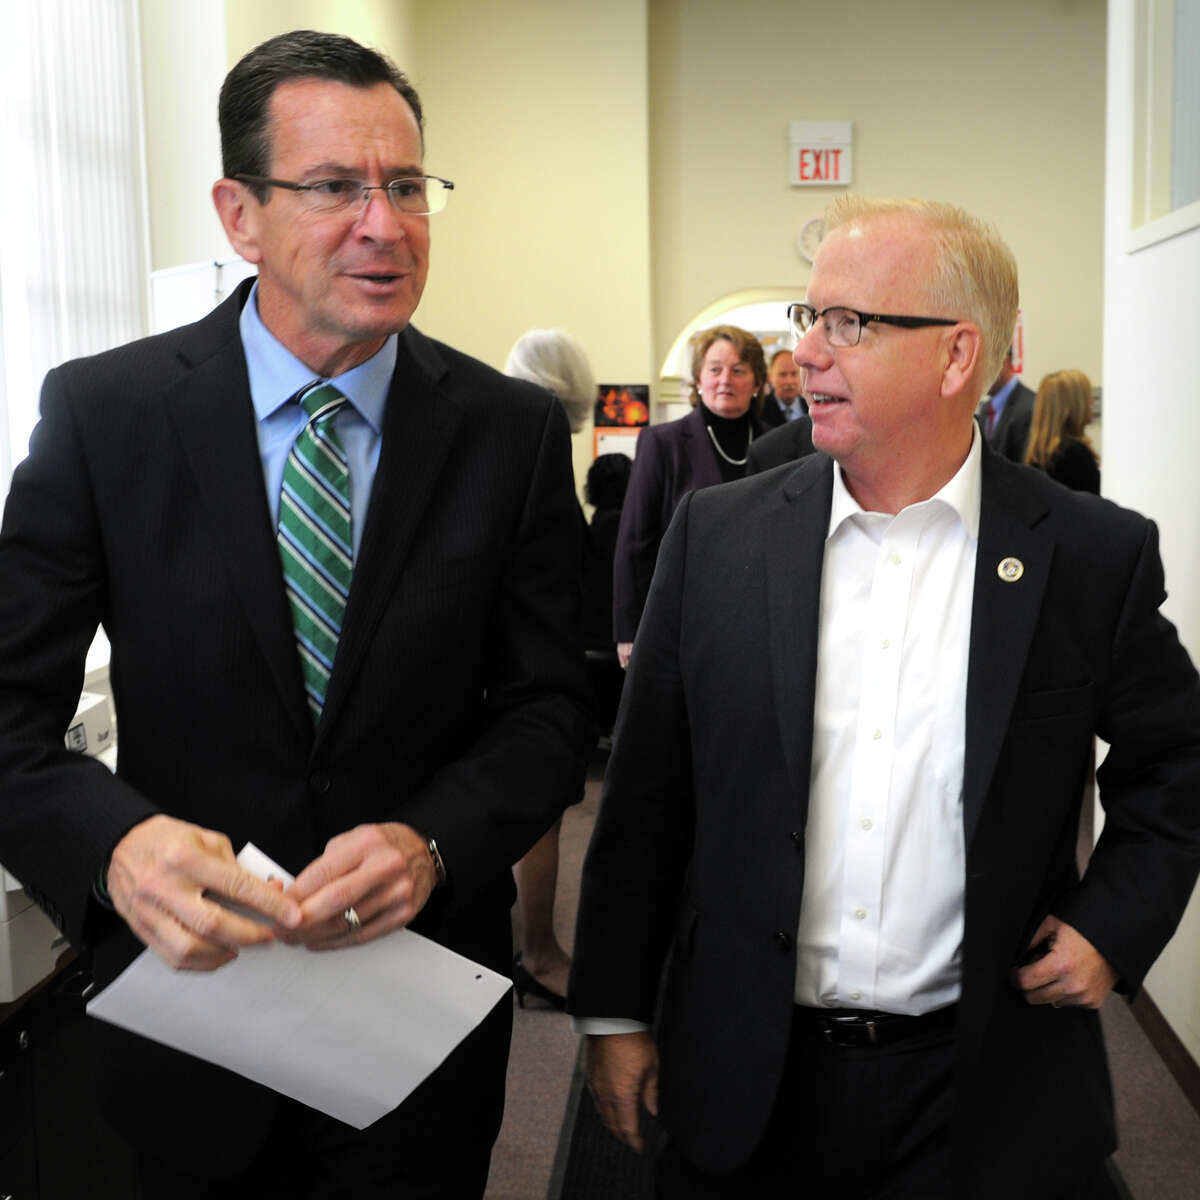 Gov. Dannel Malloy and Danbury Mayor Mark Boughton arrive at a meeting at the Greater Danbury Chamber of Commerce, in Danbury, Conn. Oct. 31, 2014. Praxair Inc. announced they will keep their world headquarters in Danbury, and will invest $65 million to build a new 100,000 square foot corporate facility.